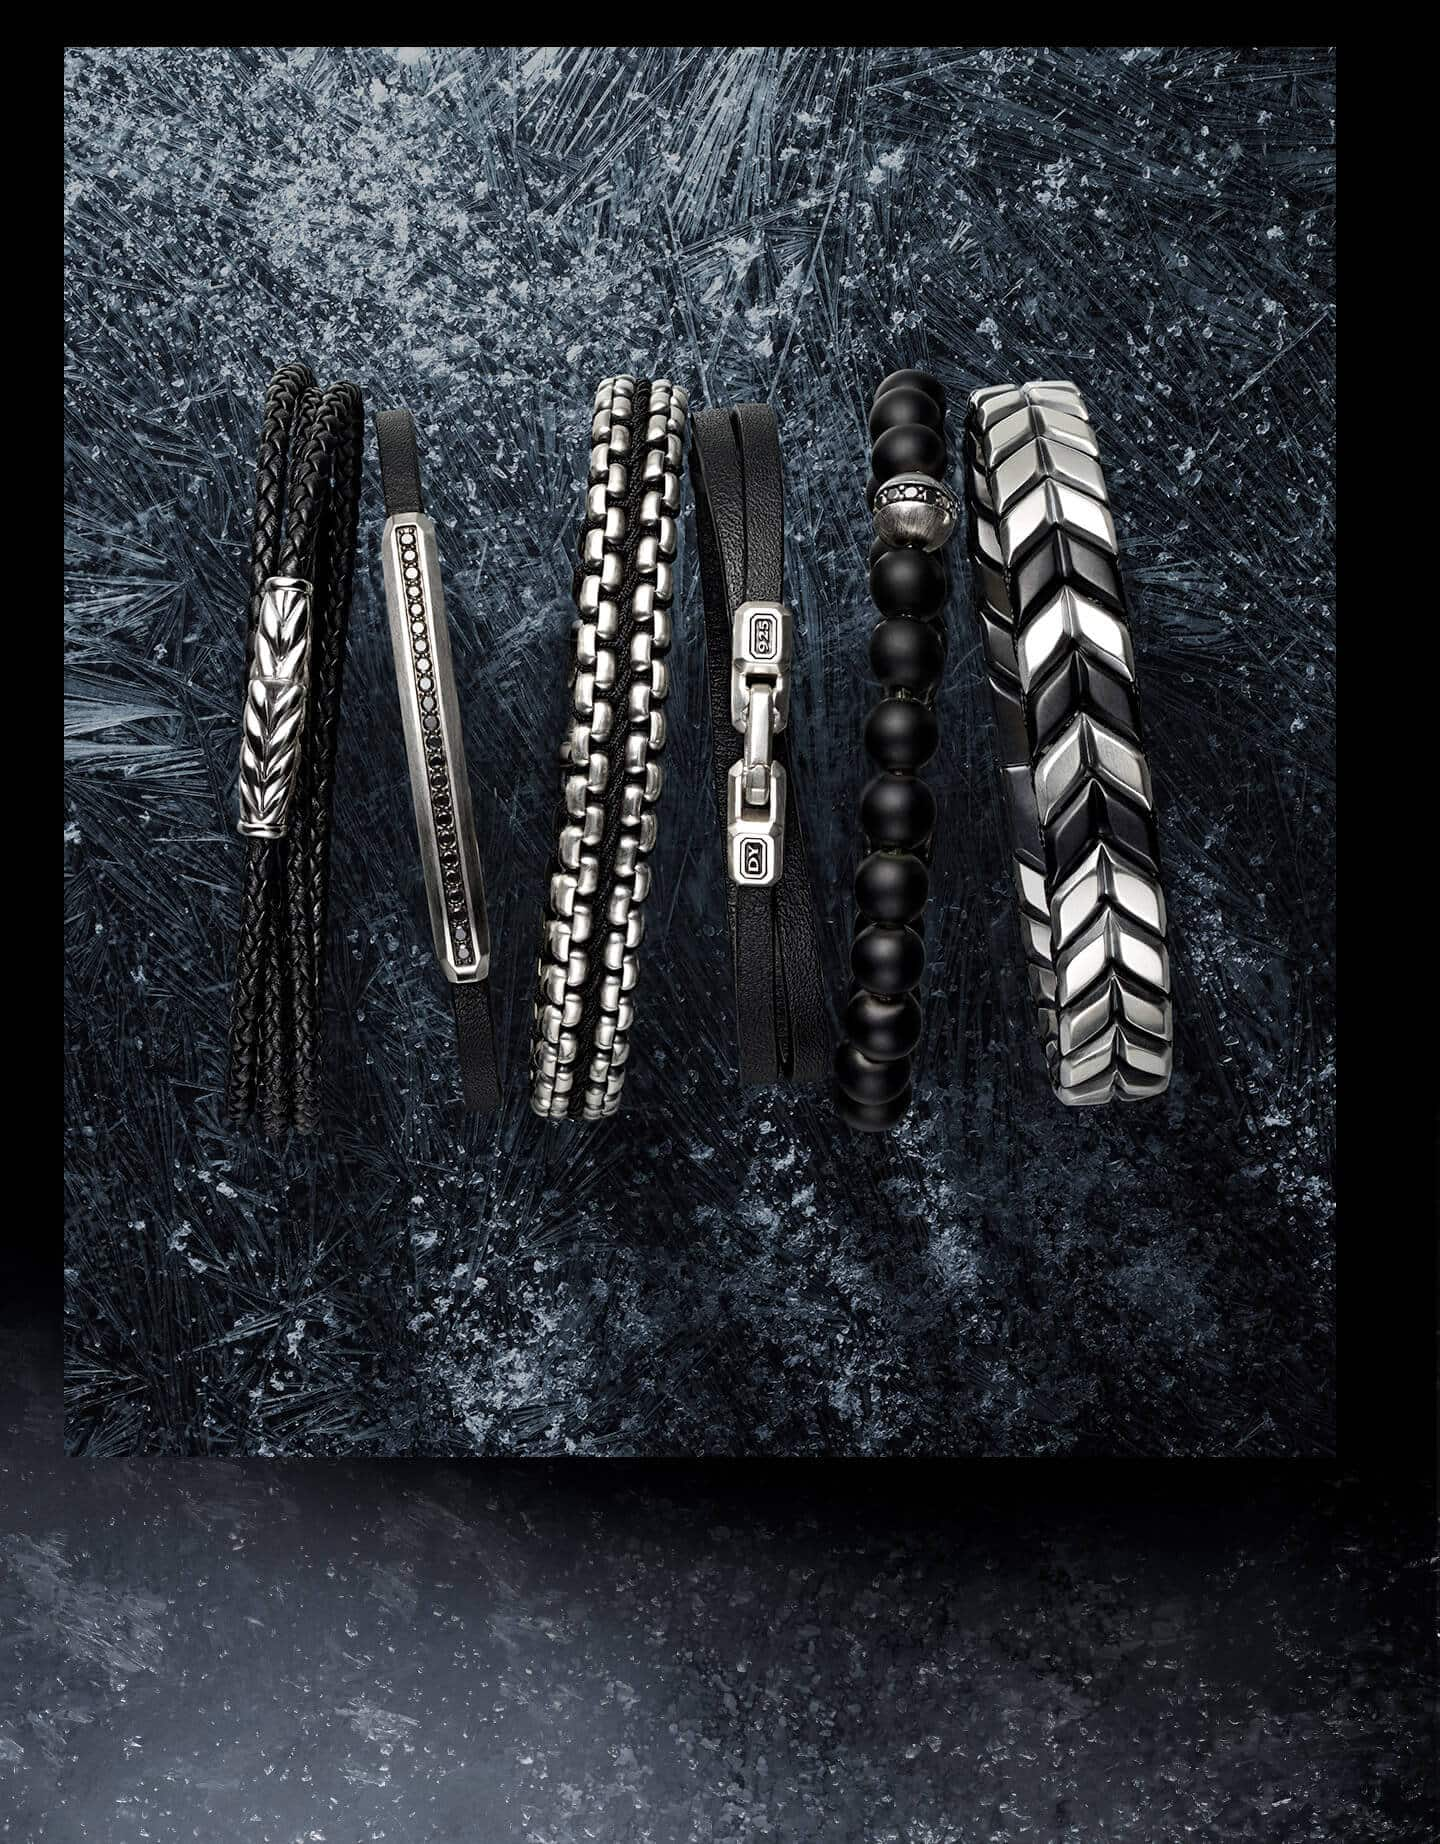 A color photo shows six David Yurman men's bracelets crafted from sterling silver and arranged in a row on top of a dark, scratched, snow-dusted icy surface as seen from above. From left is a Chevron triple-wrap bracelet in braided black leather, a Streamline ID bracelet in black leather with pavé black diamonds, a Chain bracelet in black nylon, a Streamline double-wrap bracelet in black leather, a Spiritual Beads bracelet in black onyx with pavé black diamonds and a Chevron bracelet with black titanium.